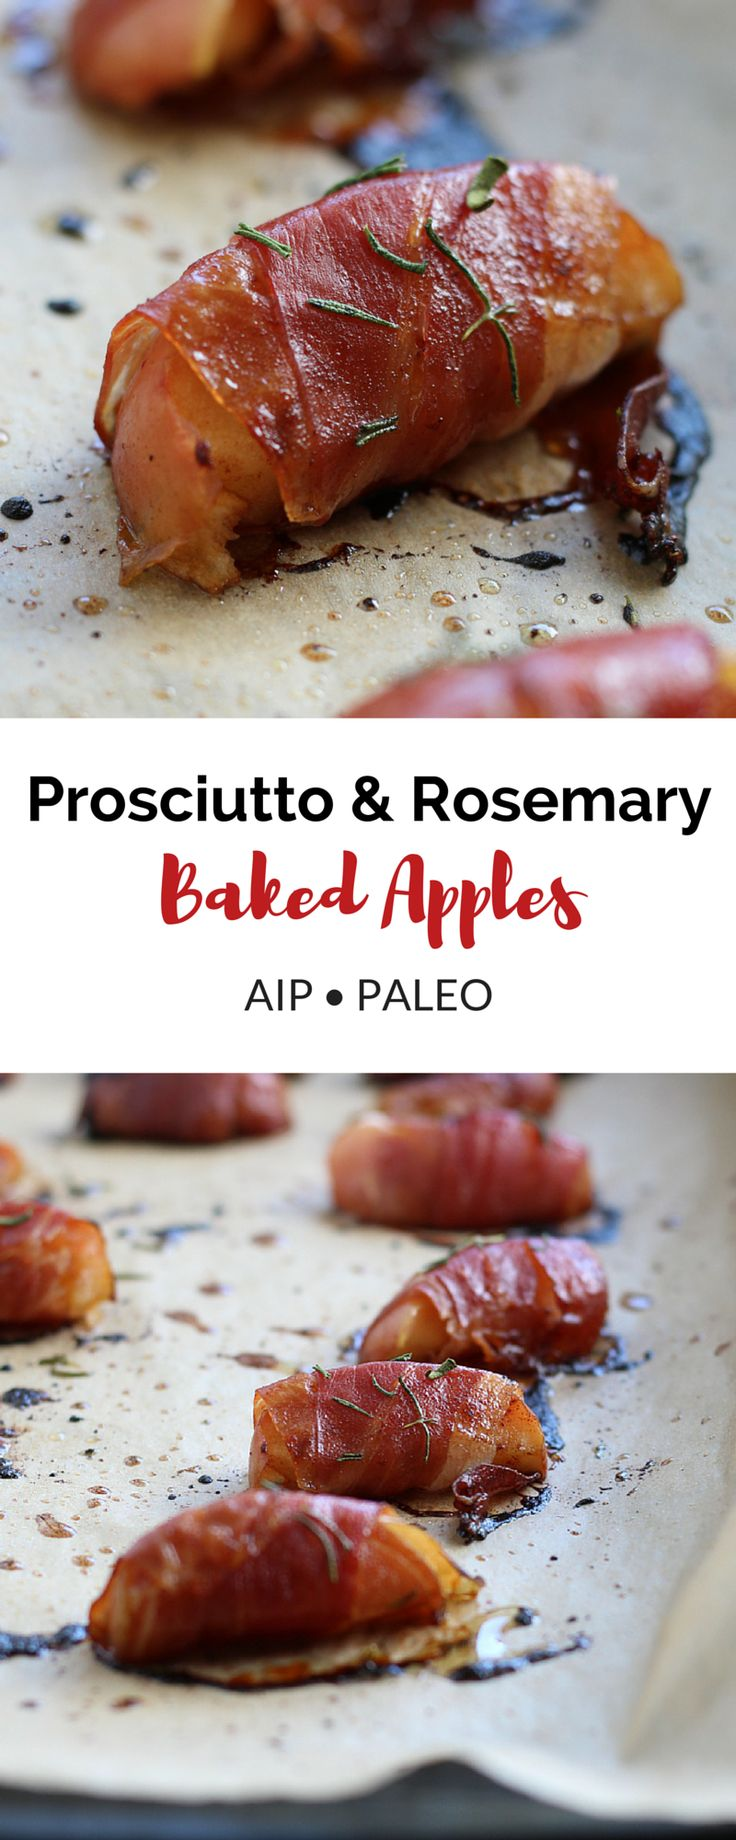 Prosciutto & Rosemary Baked Apples